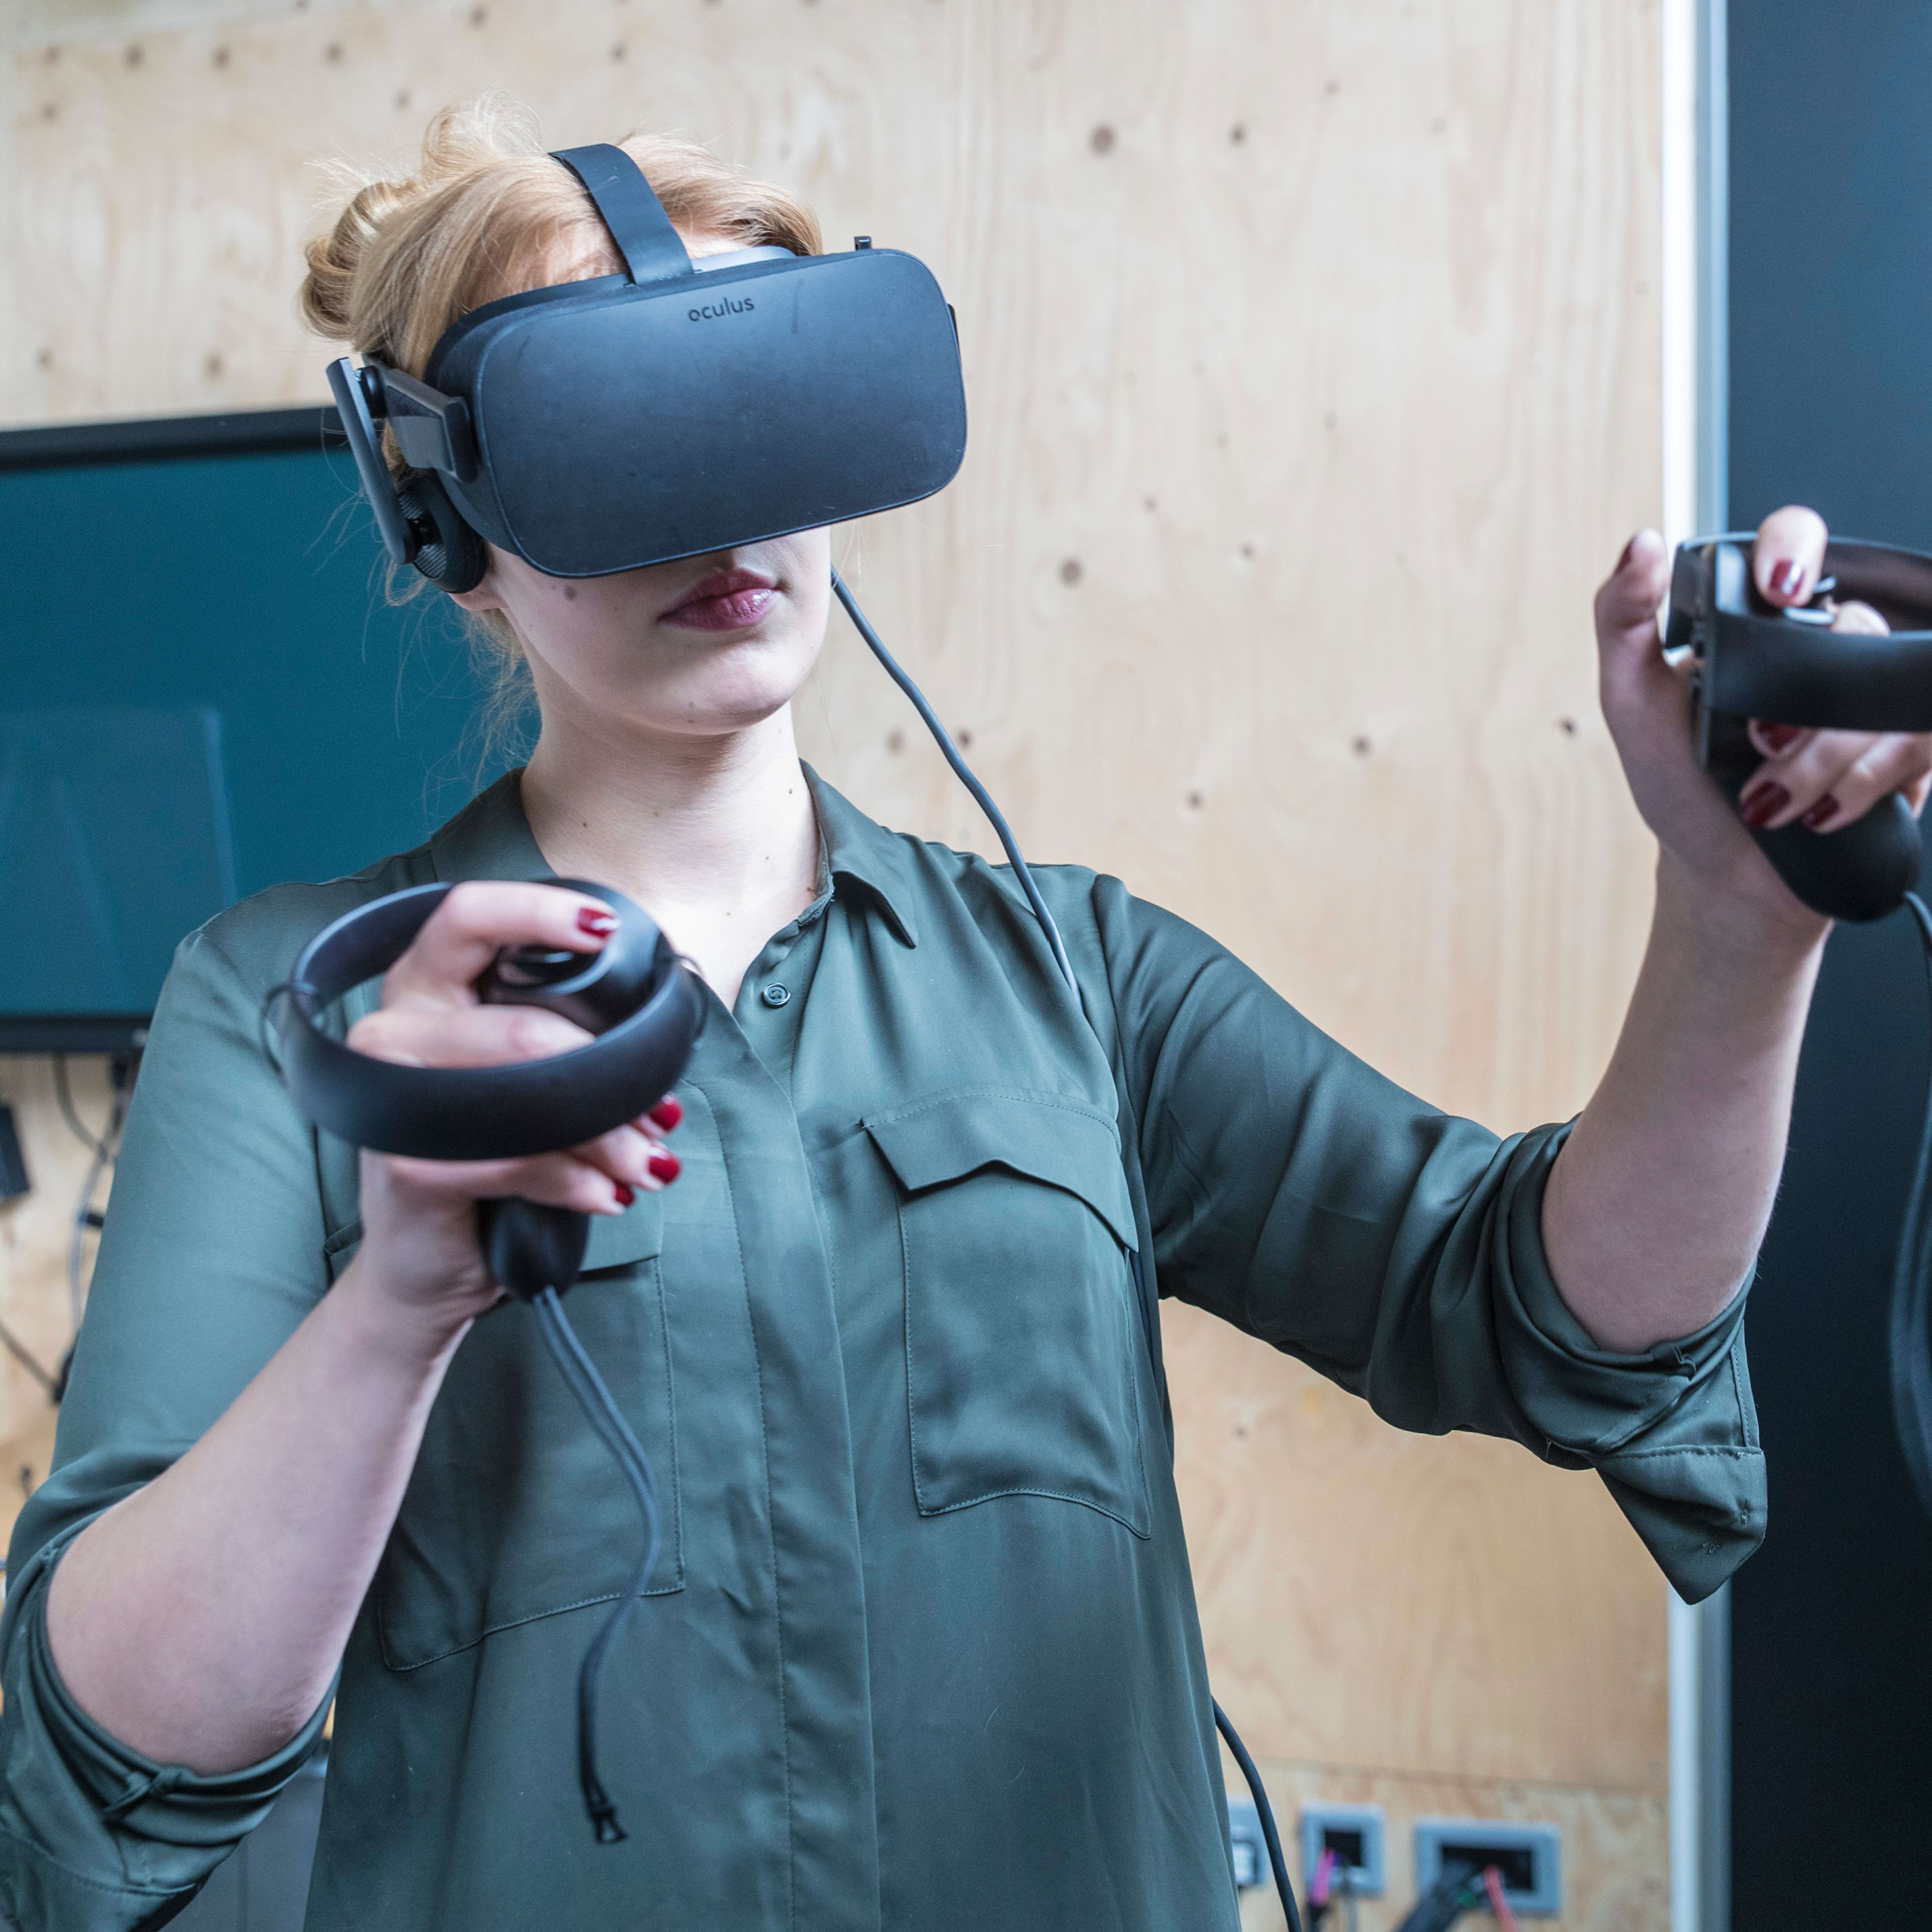 A person using a VR headset and controls